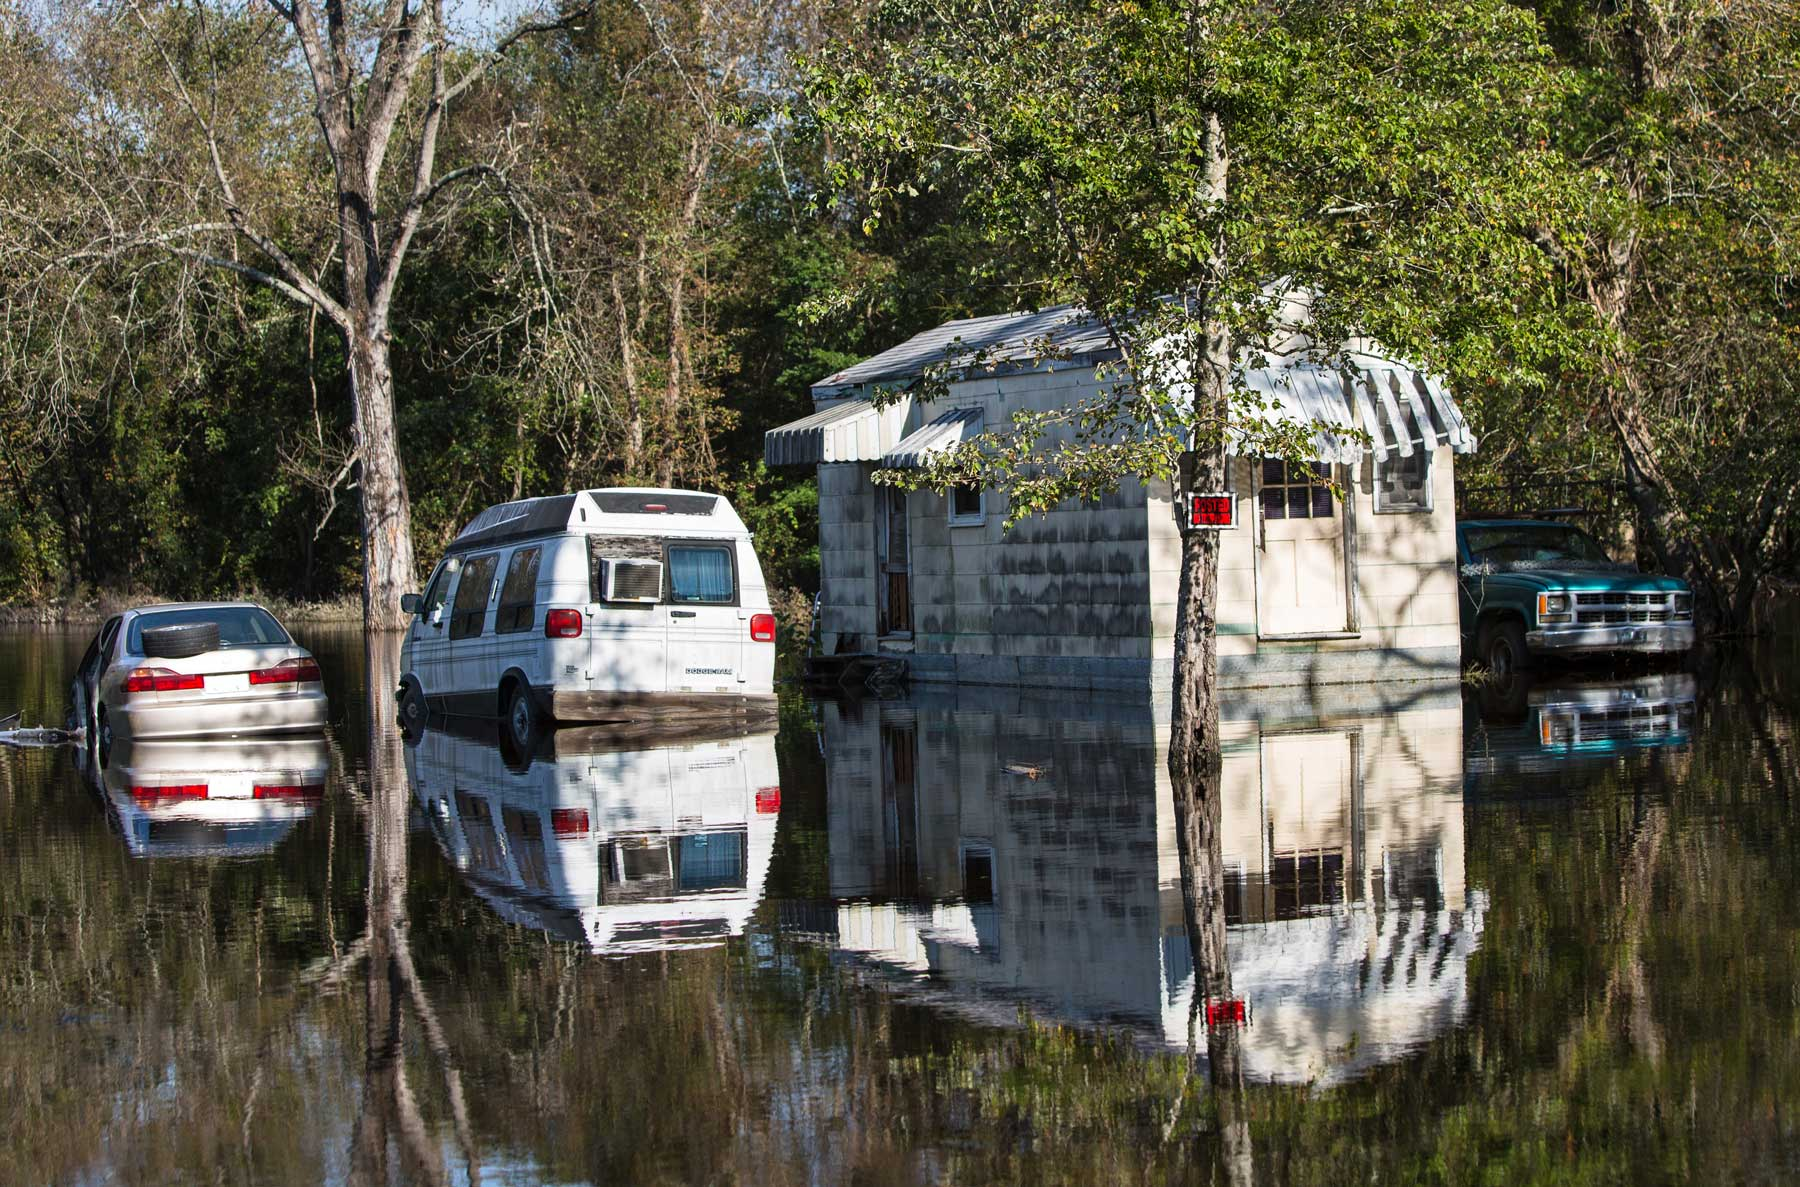 A home and cars are mirrored in the floodwaters of Hurricane Matthew. (Julie Dermansky)